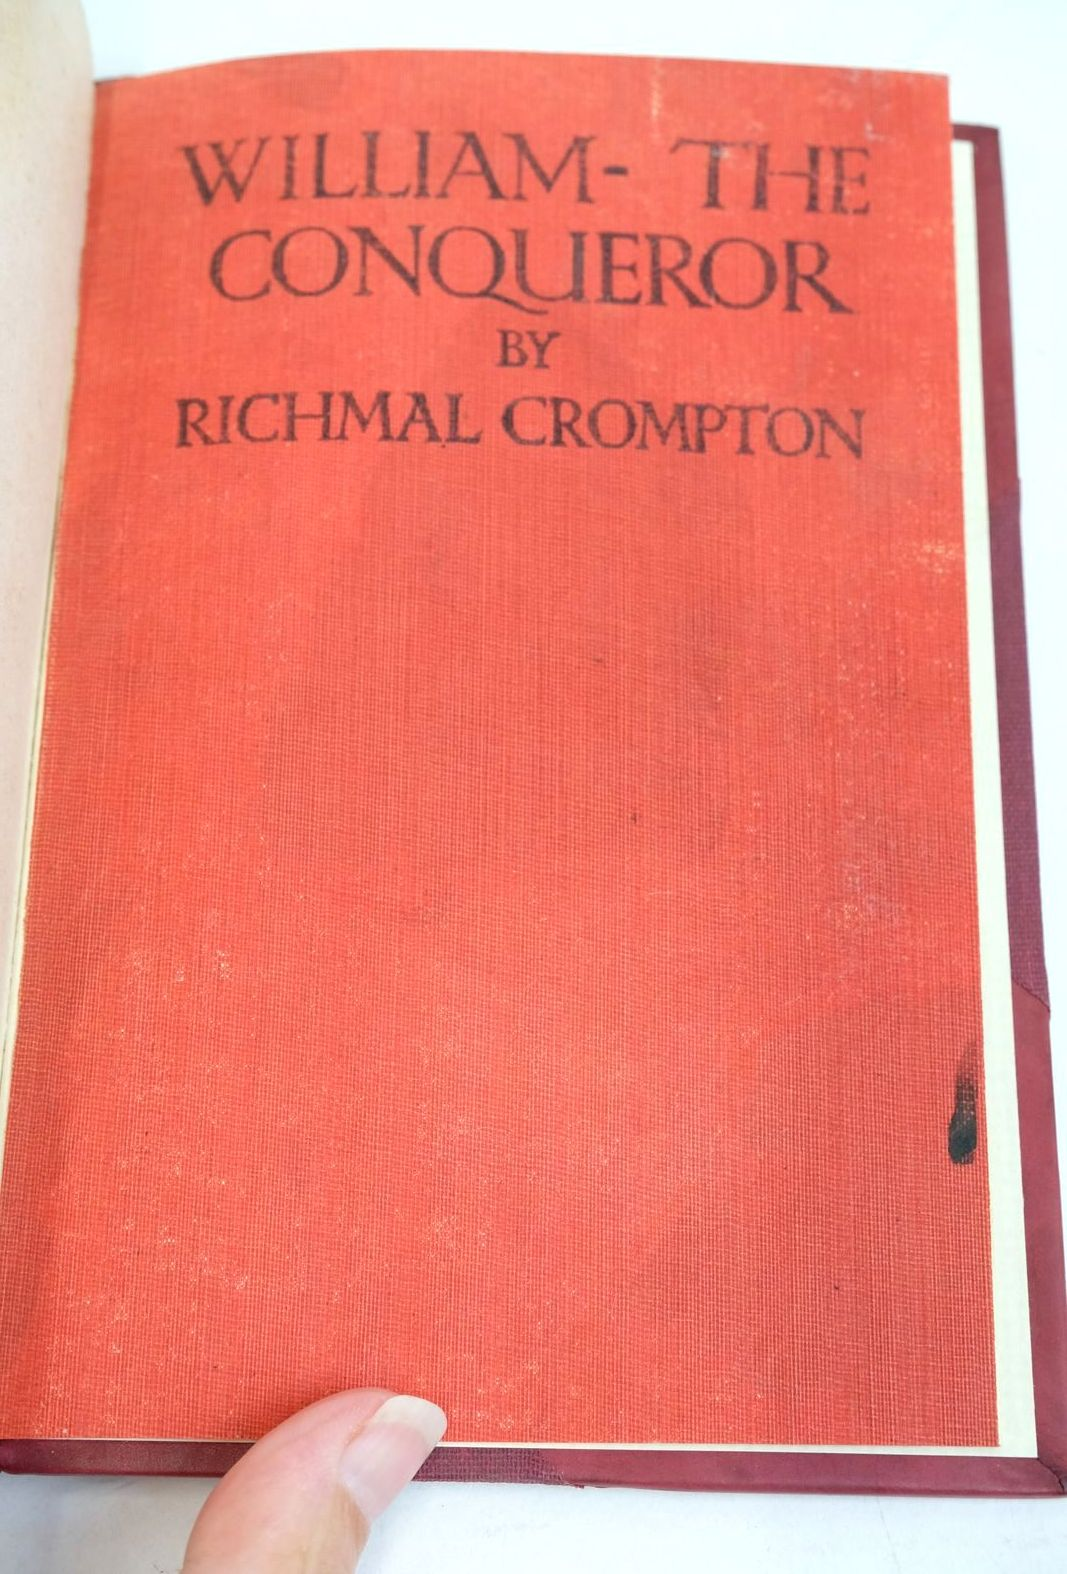 Photo of WILLIAM THE CONQUEROR written by Crompton, Richmal illustrated by Henry, Thomas published by George Newnes Limited (STOCK CODE: 1320867)  for sale by Stella & Rose's Books